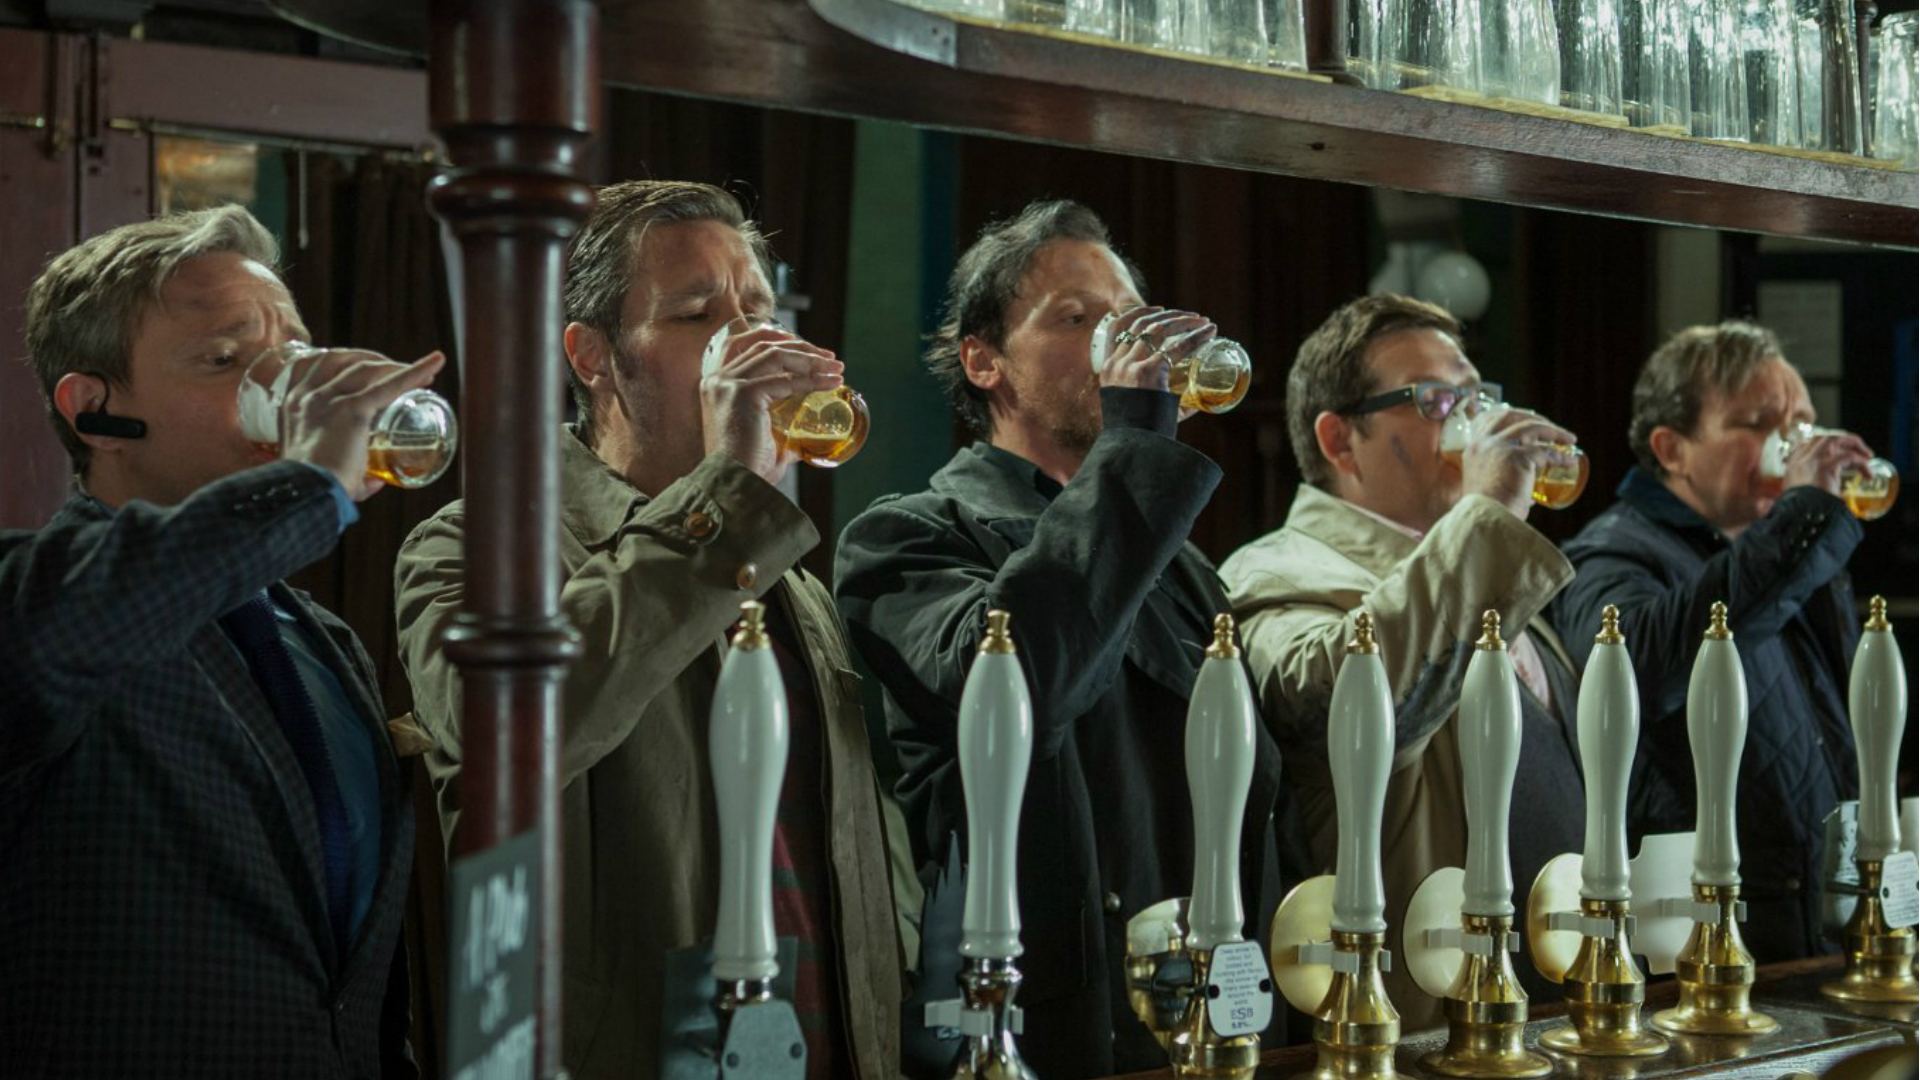 The cast of World's End downing pints of beer